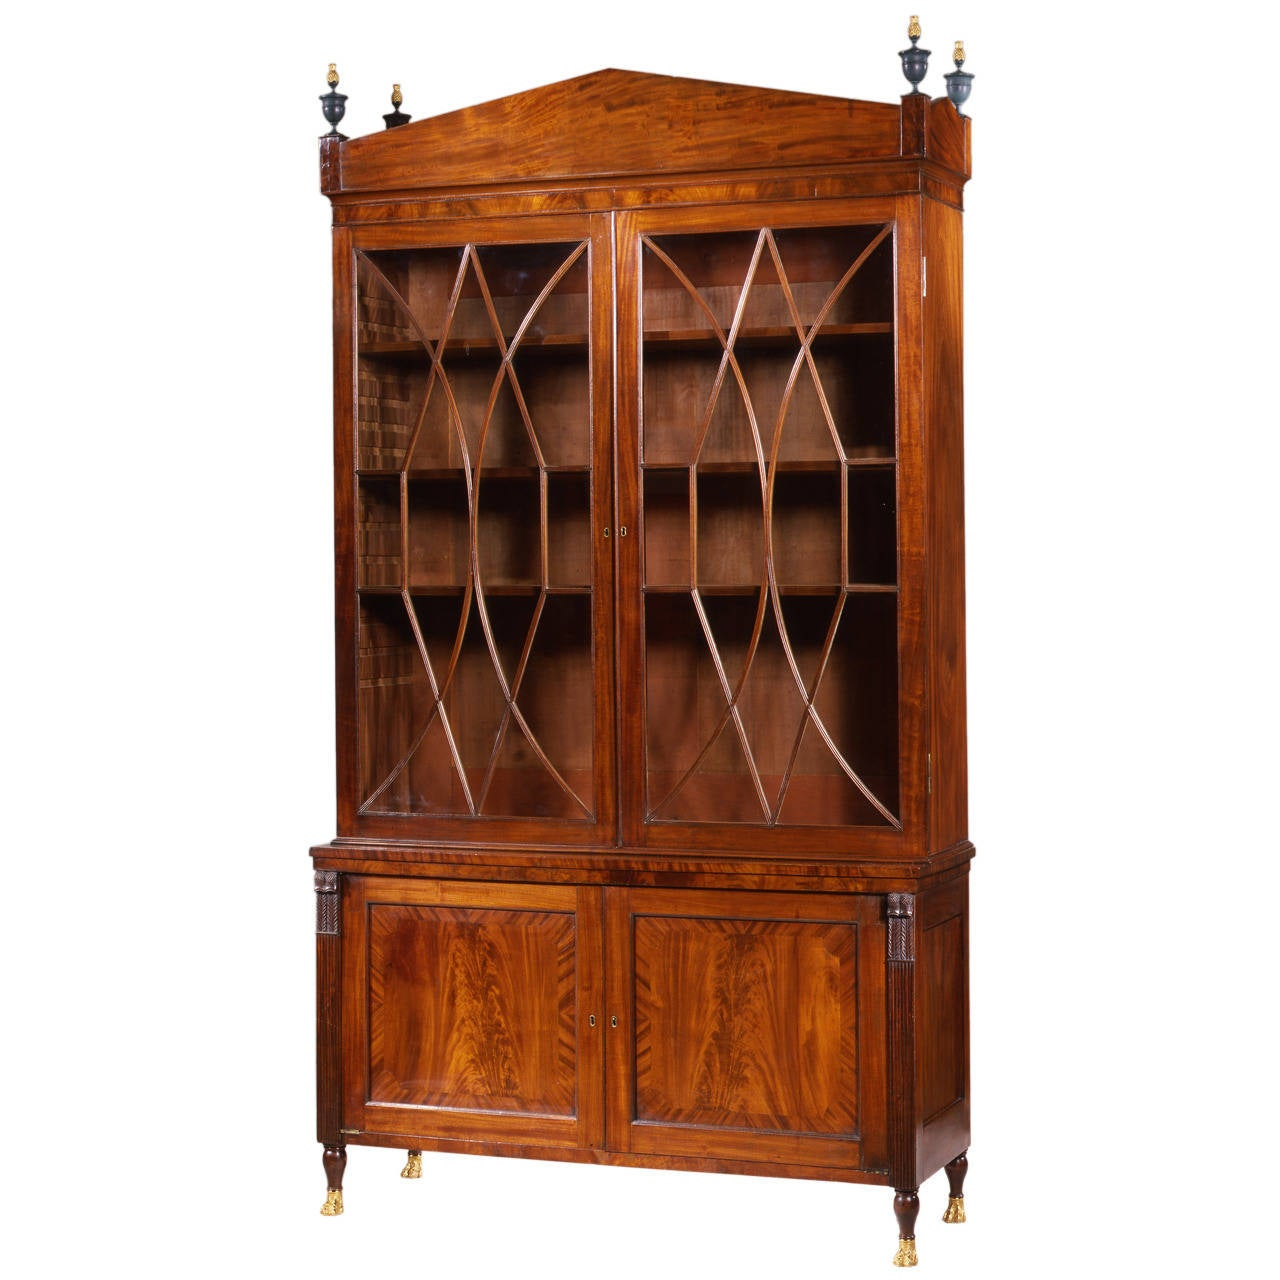 Federal Carved Mahogany Bookcase with Brass Paw Feet, circa 1805-1810 For Sale